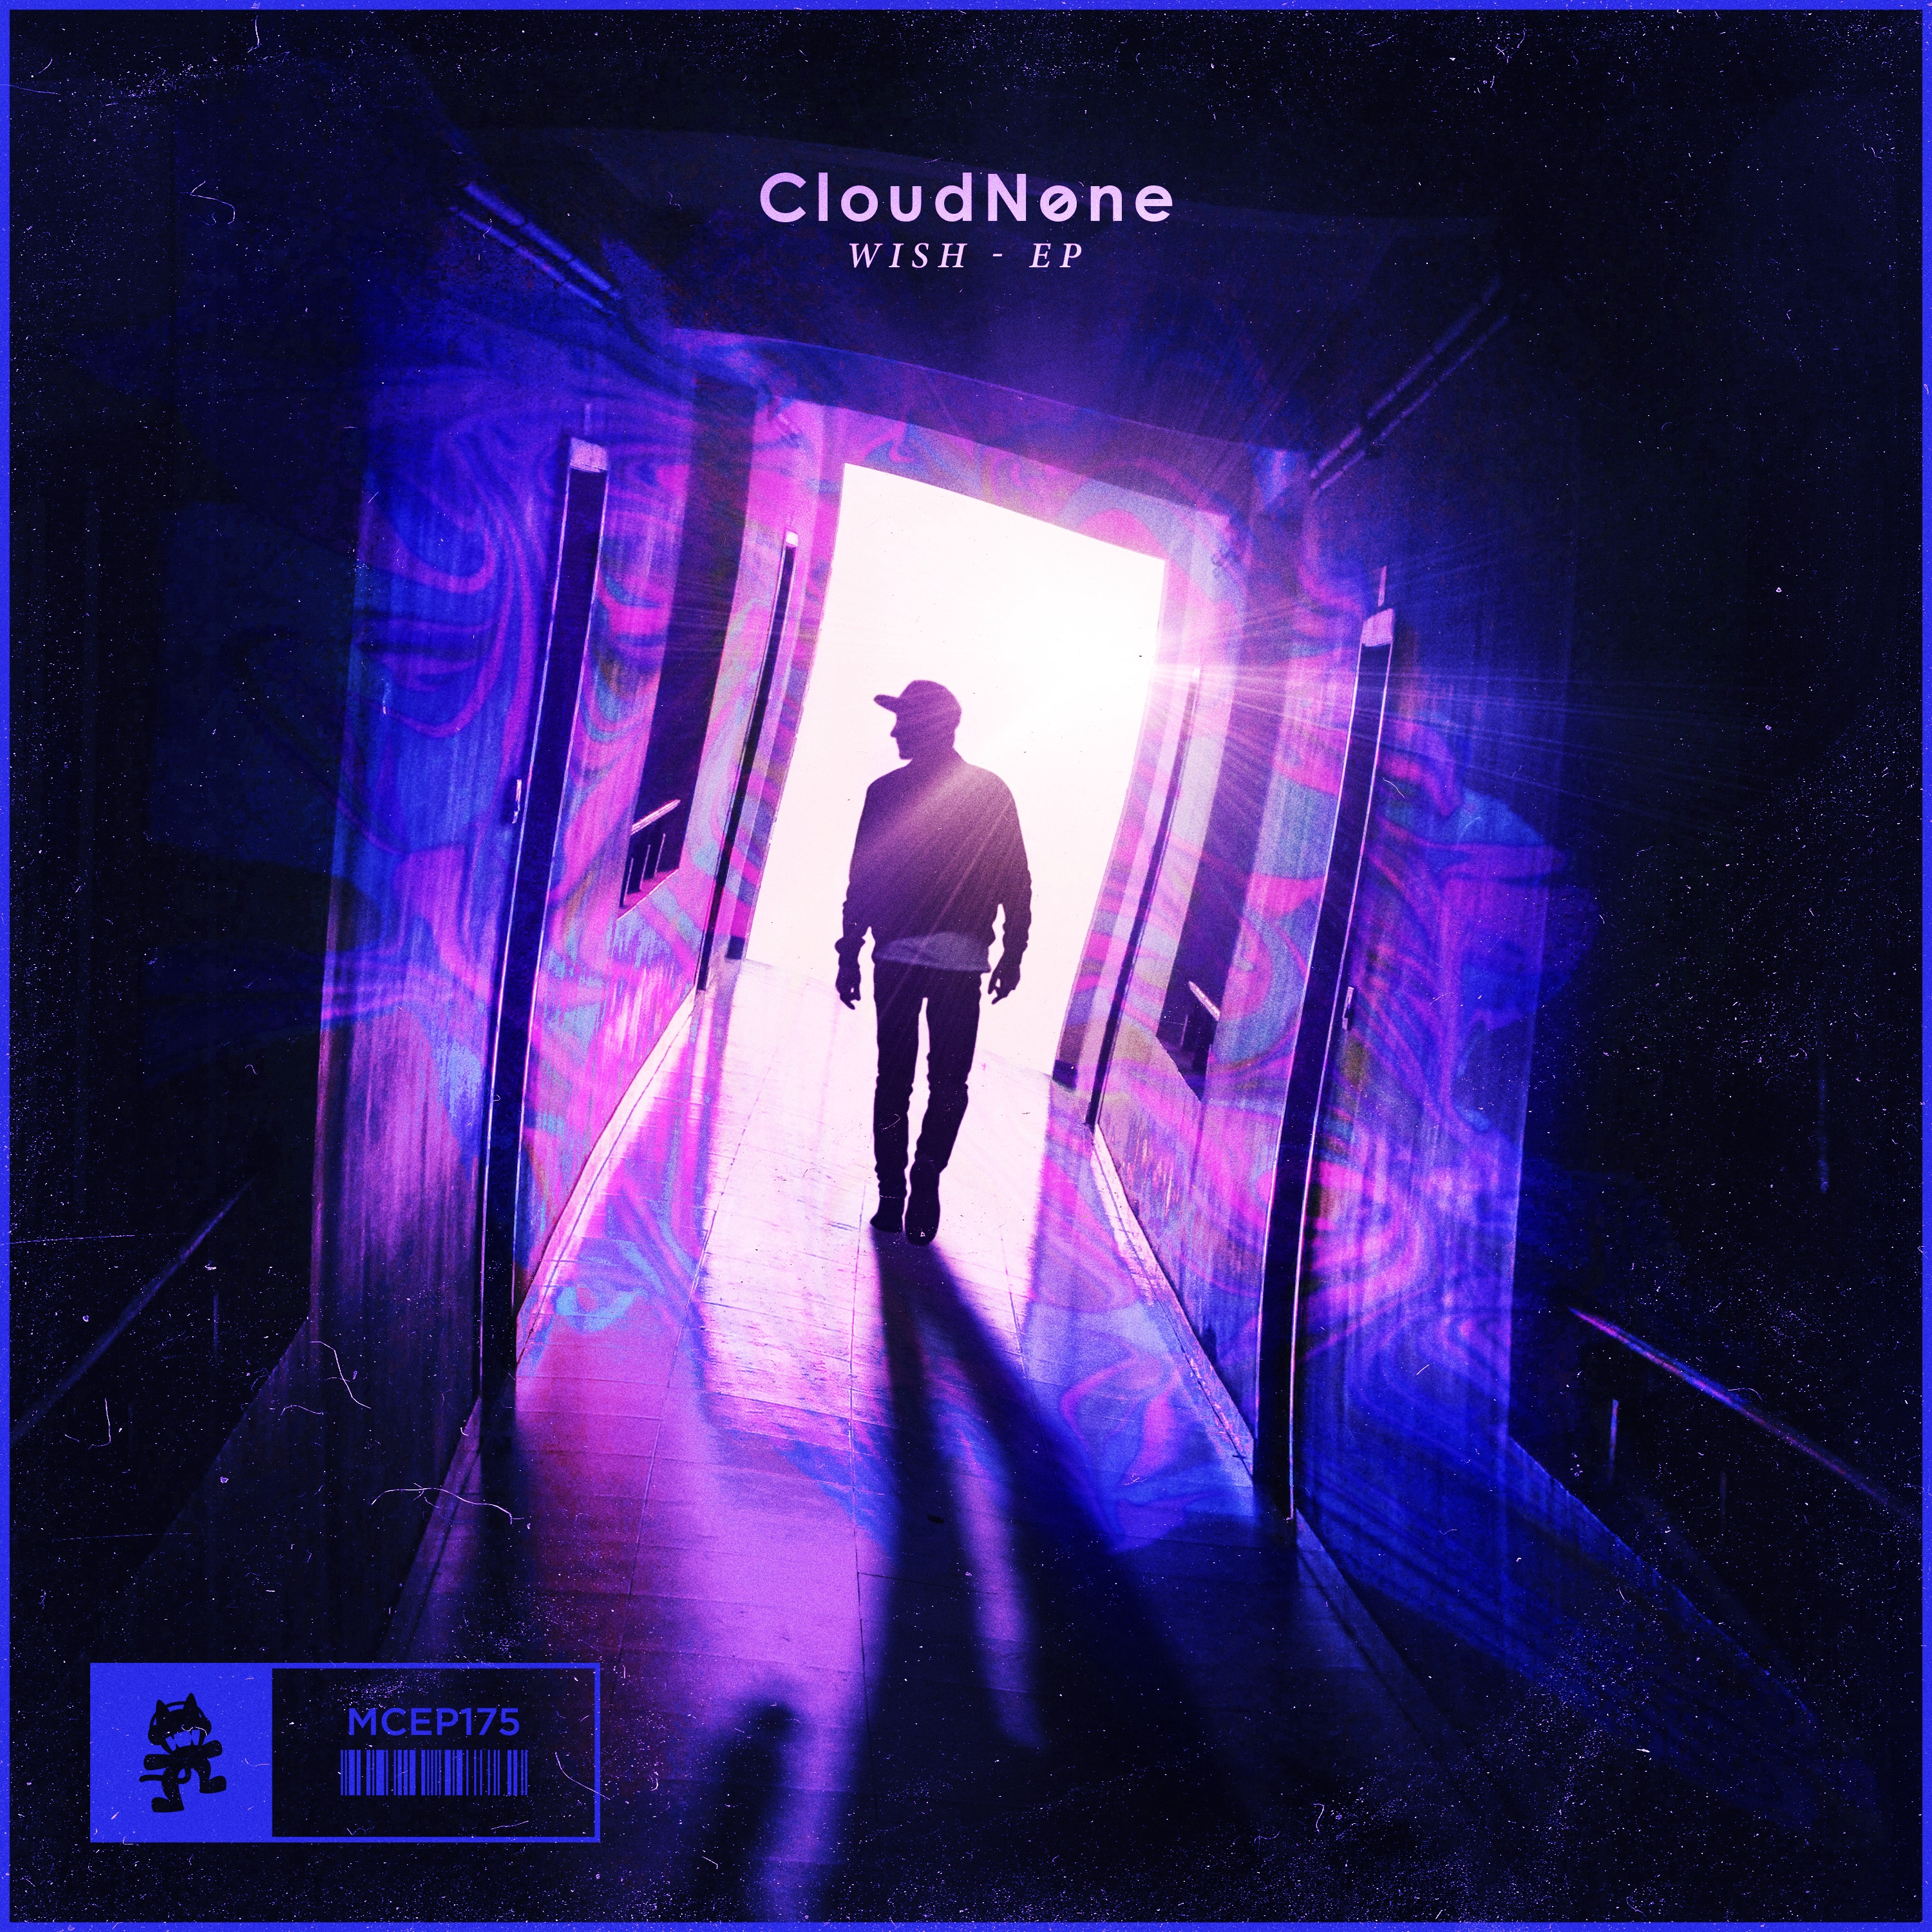 Stay (CloudNone)